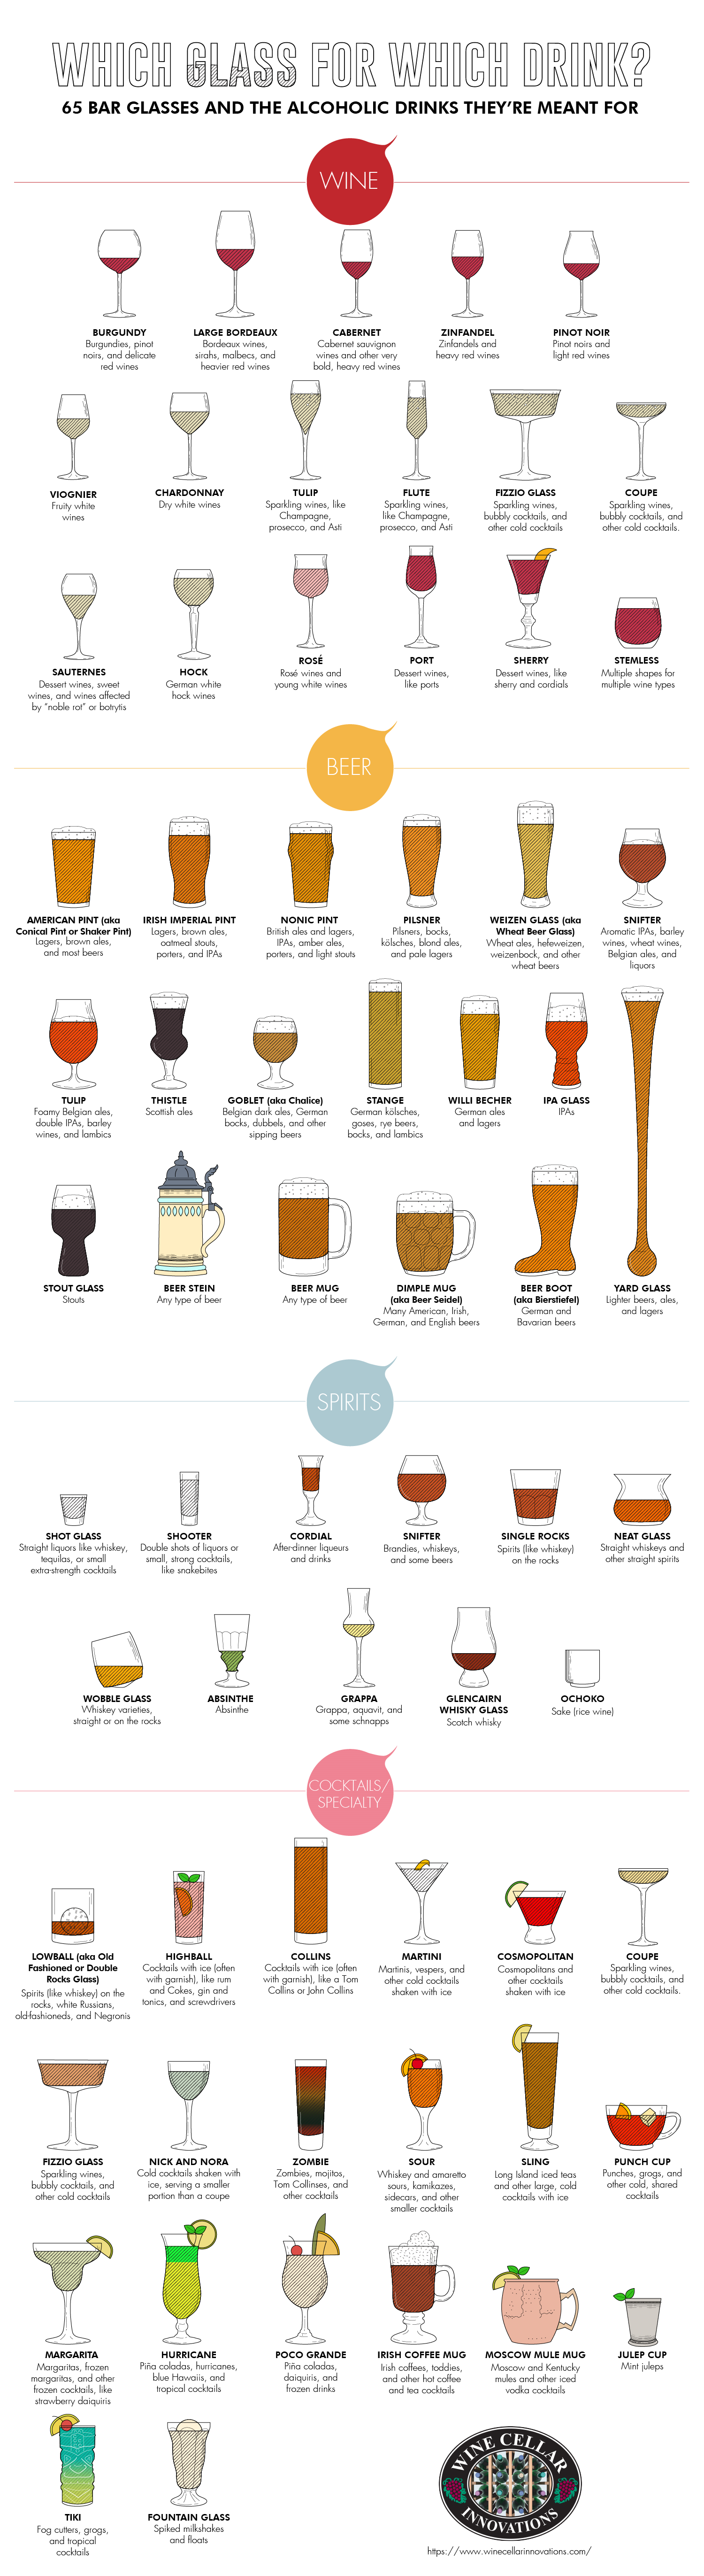 Which Glass for Which Drink? 65 Bar Glasses and The Alcoholic Drinks They're Meant For Infographic